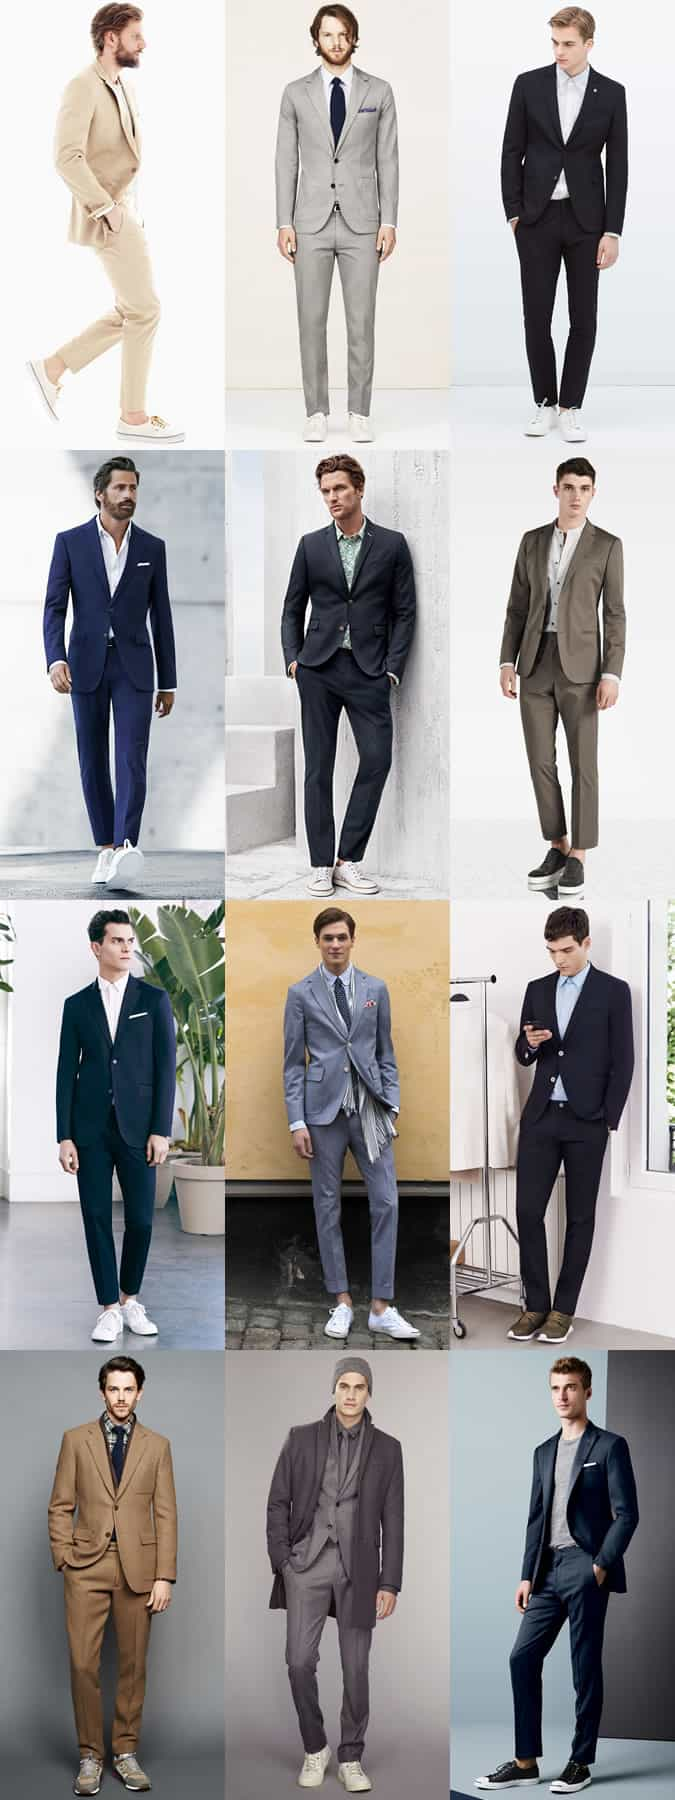 Men's Suits and Trainers Combinations - Outfit Inspiration Lookbook